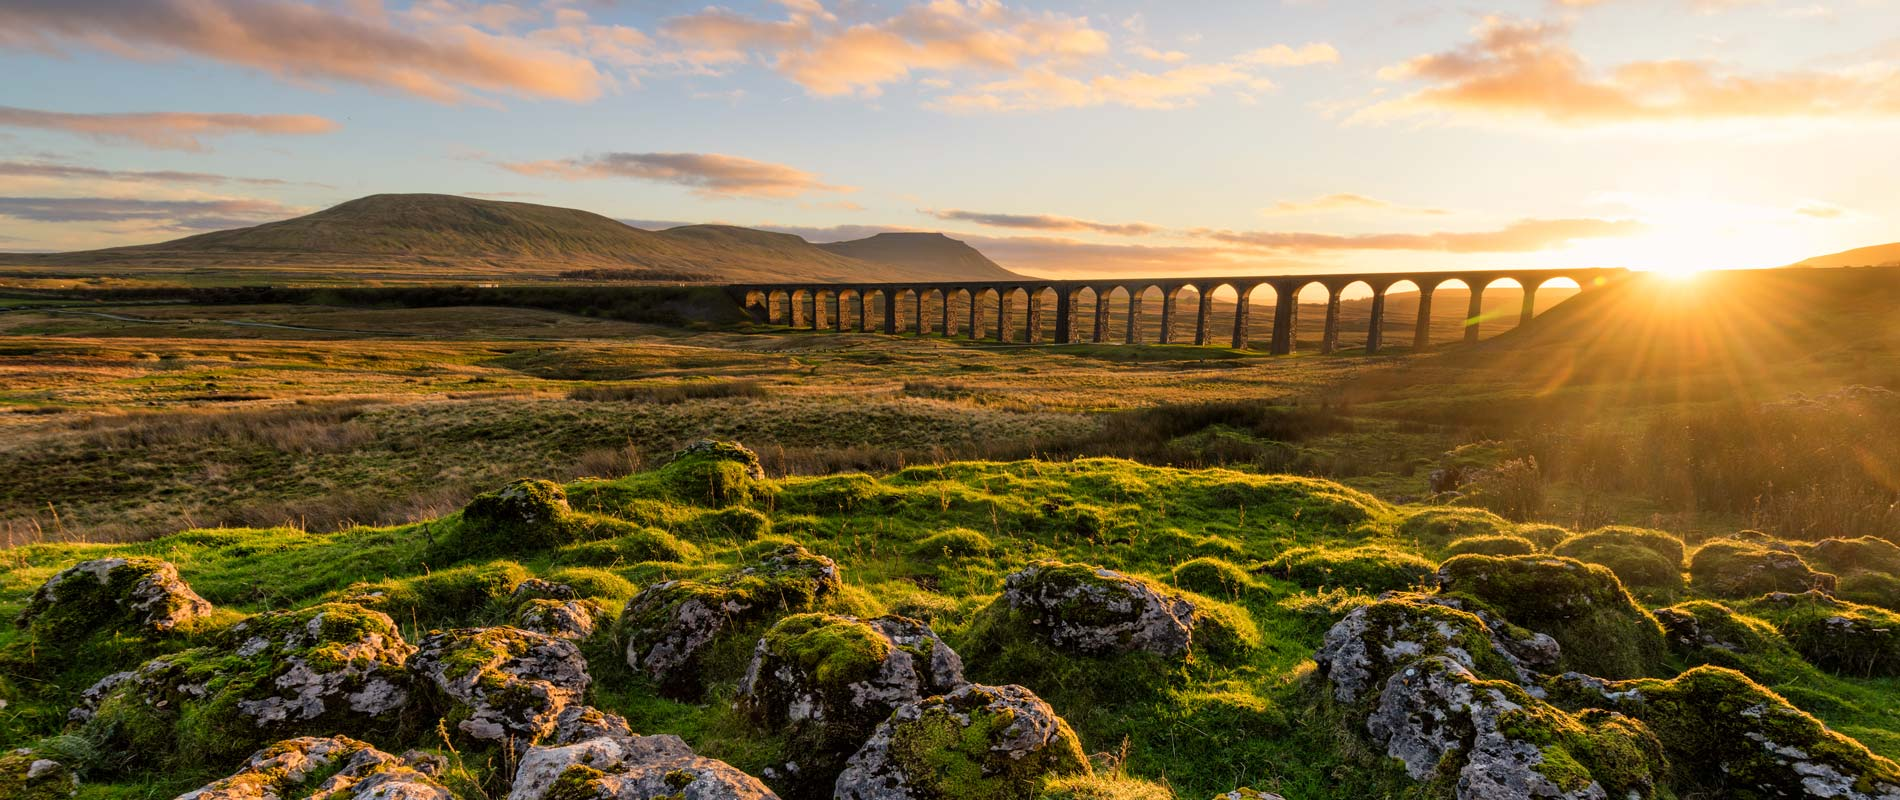 Ribblehead viaduct in North Yorkshire Dales, with moss-covered rocks in the foreground and green open spaces